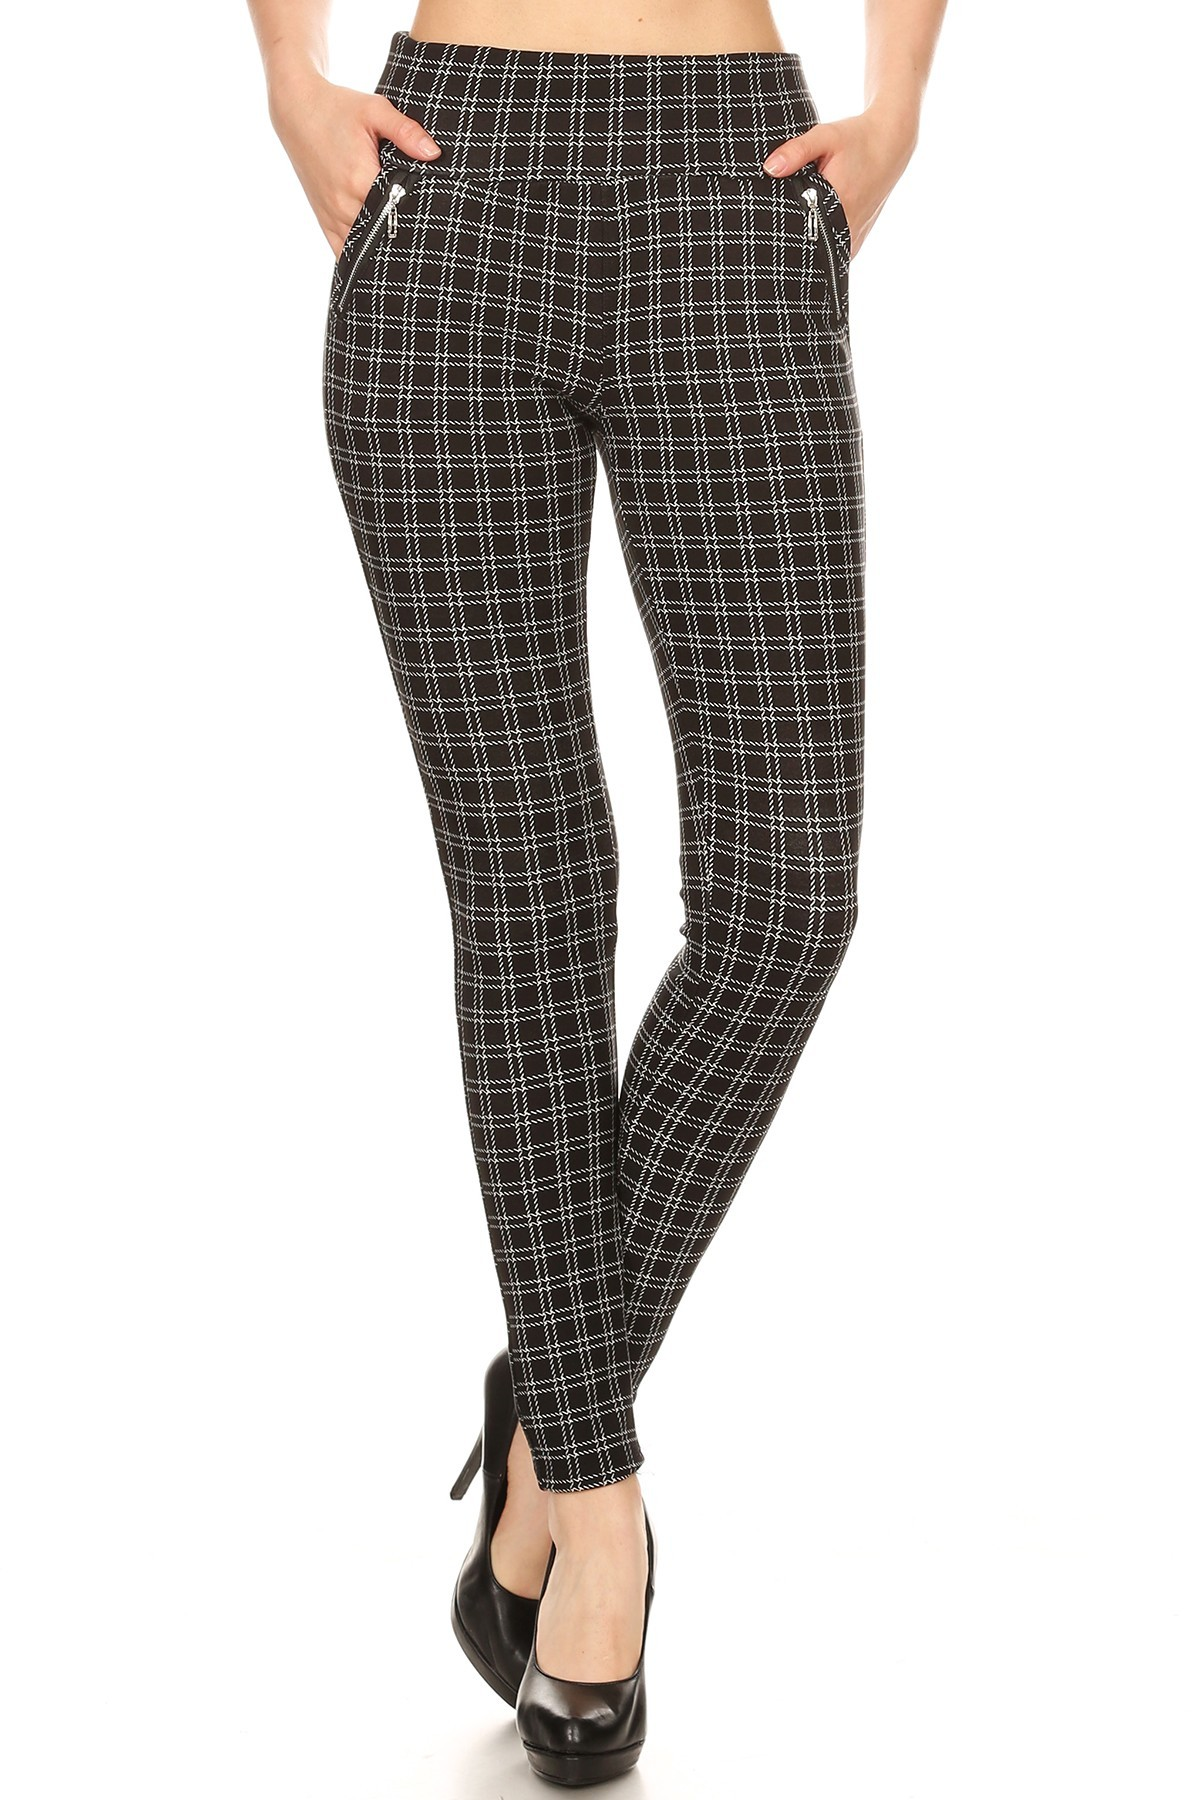 BLACK/WHITE PLAID PRINT TREGGING WITH ZIPPER DETAIL#8TRG03-13